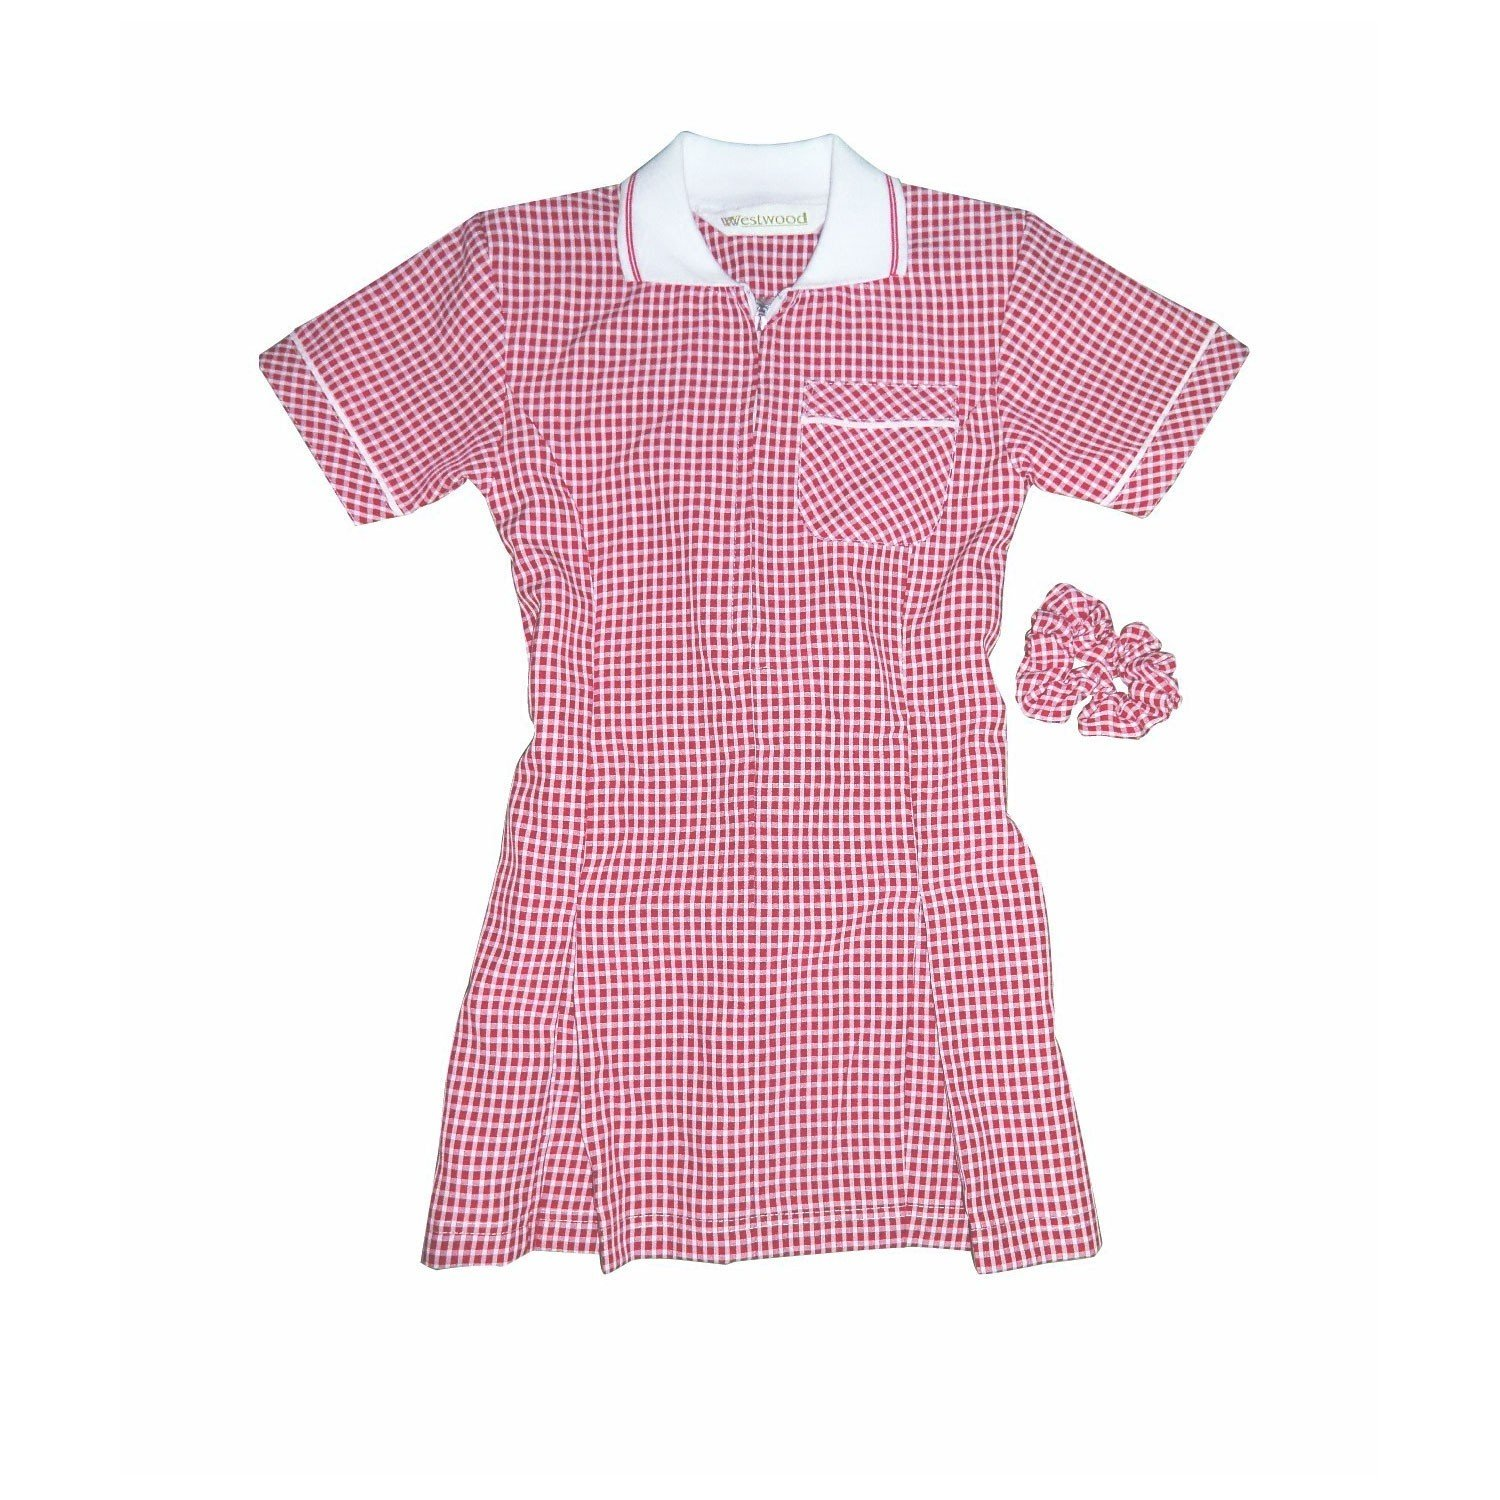 New! Girls Gingham Check School Dress + Free Scrunchie 7364: Amazon.co.uk:  Clothing